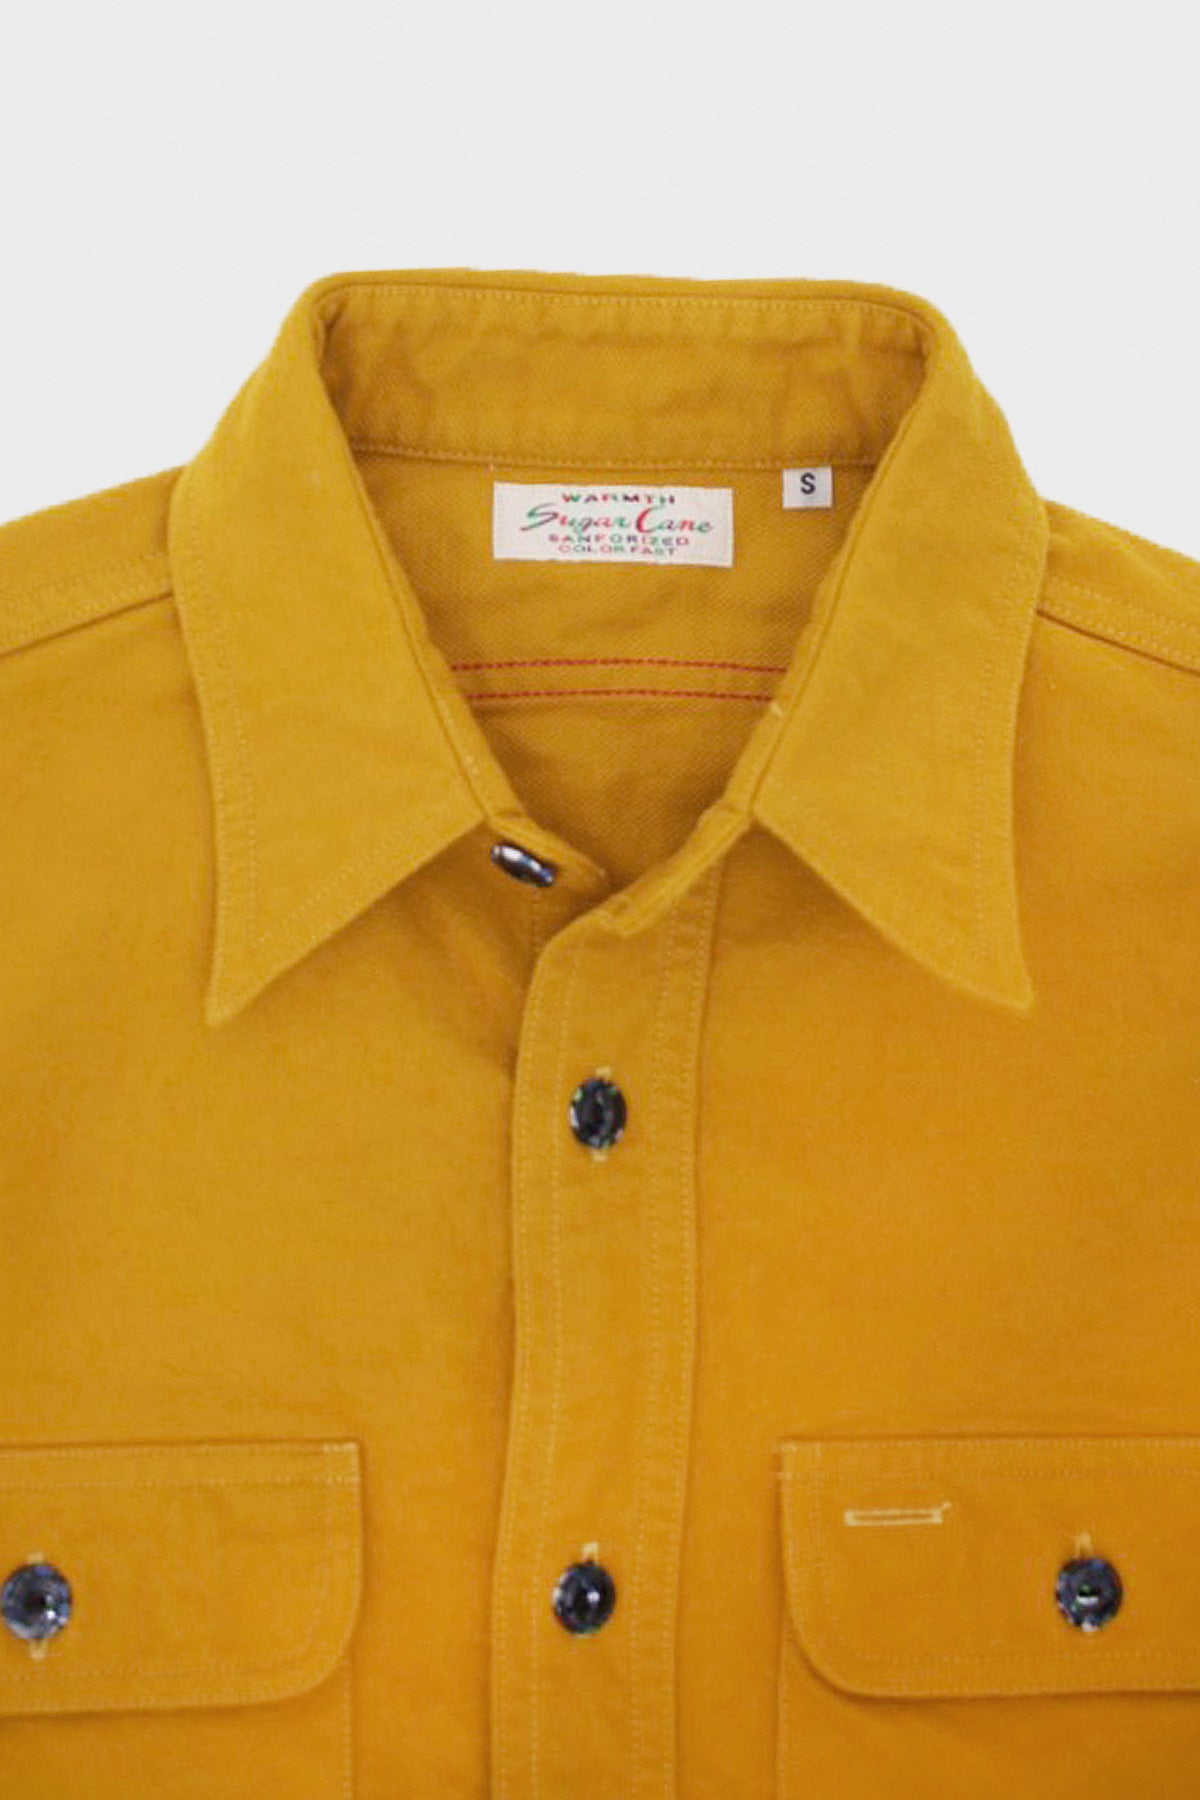 Sugar Cane - Heavy Twill Shirt - Mustard - Canoe Club